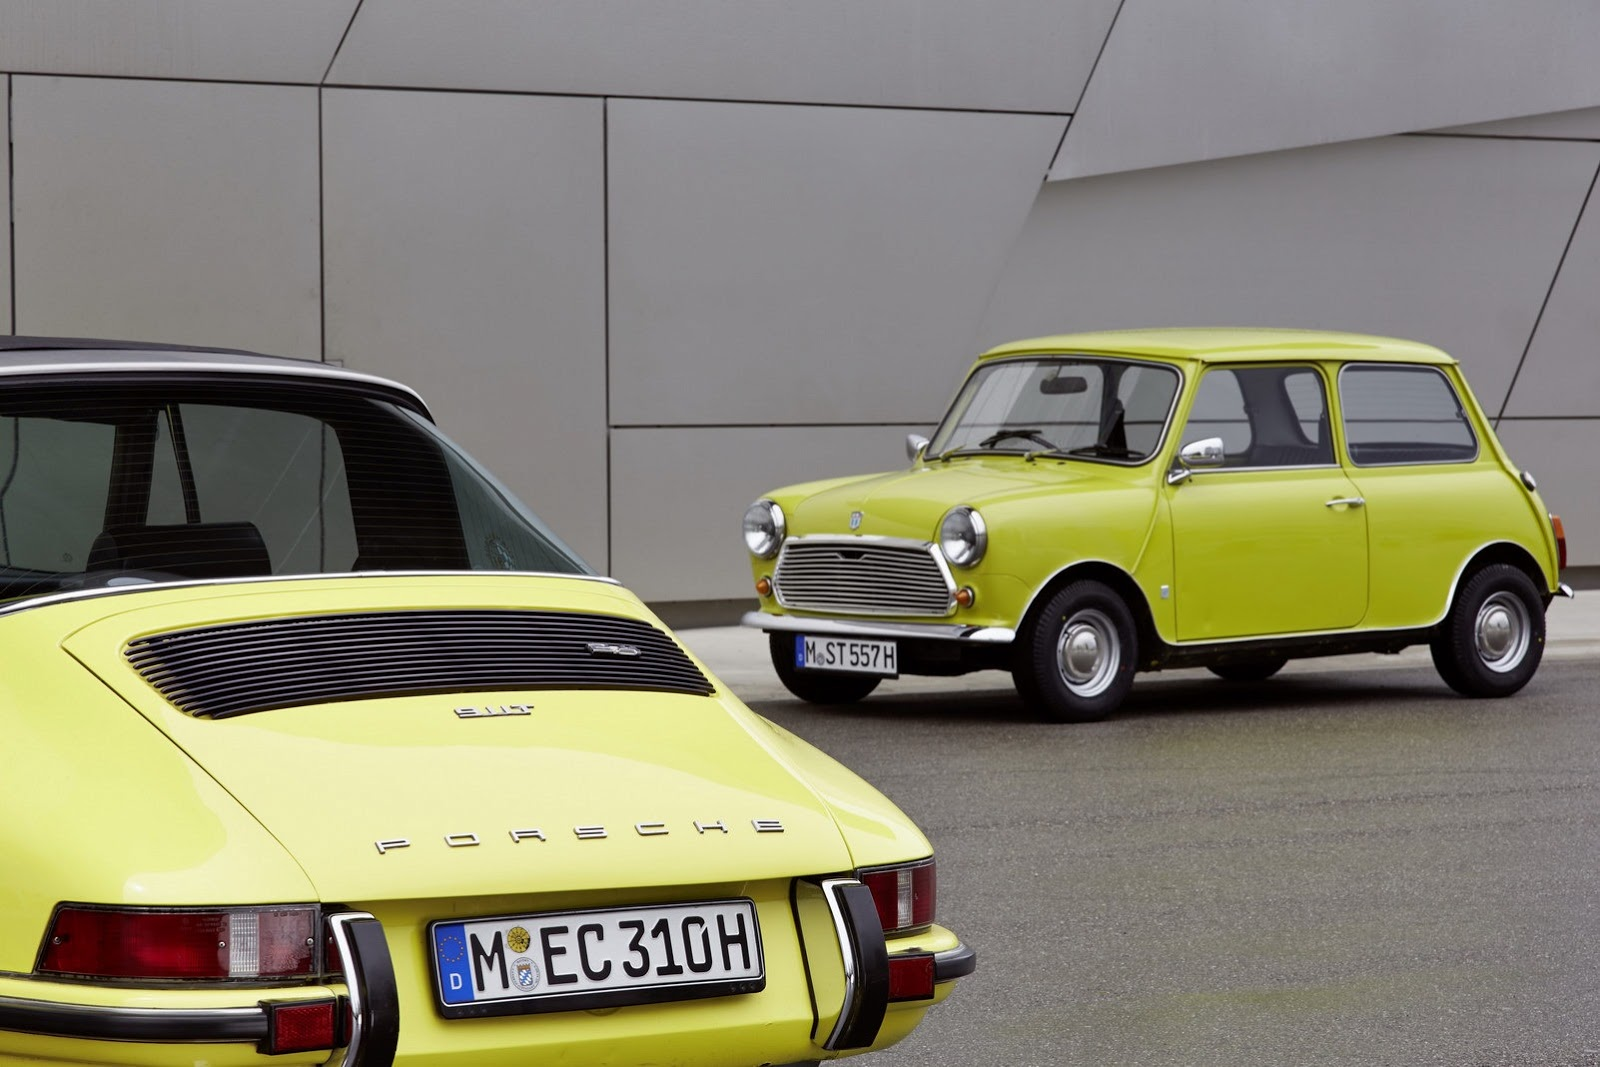 MINI Sends Birthday Wishes To Porscheu0027s 911 Sports Car With Awesome Photo  Shoot | Top Speed. »